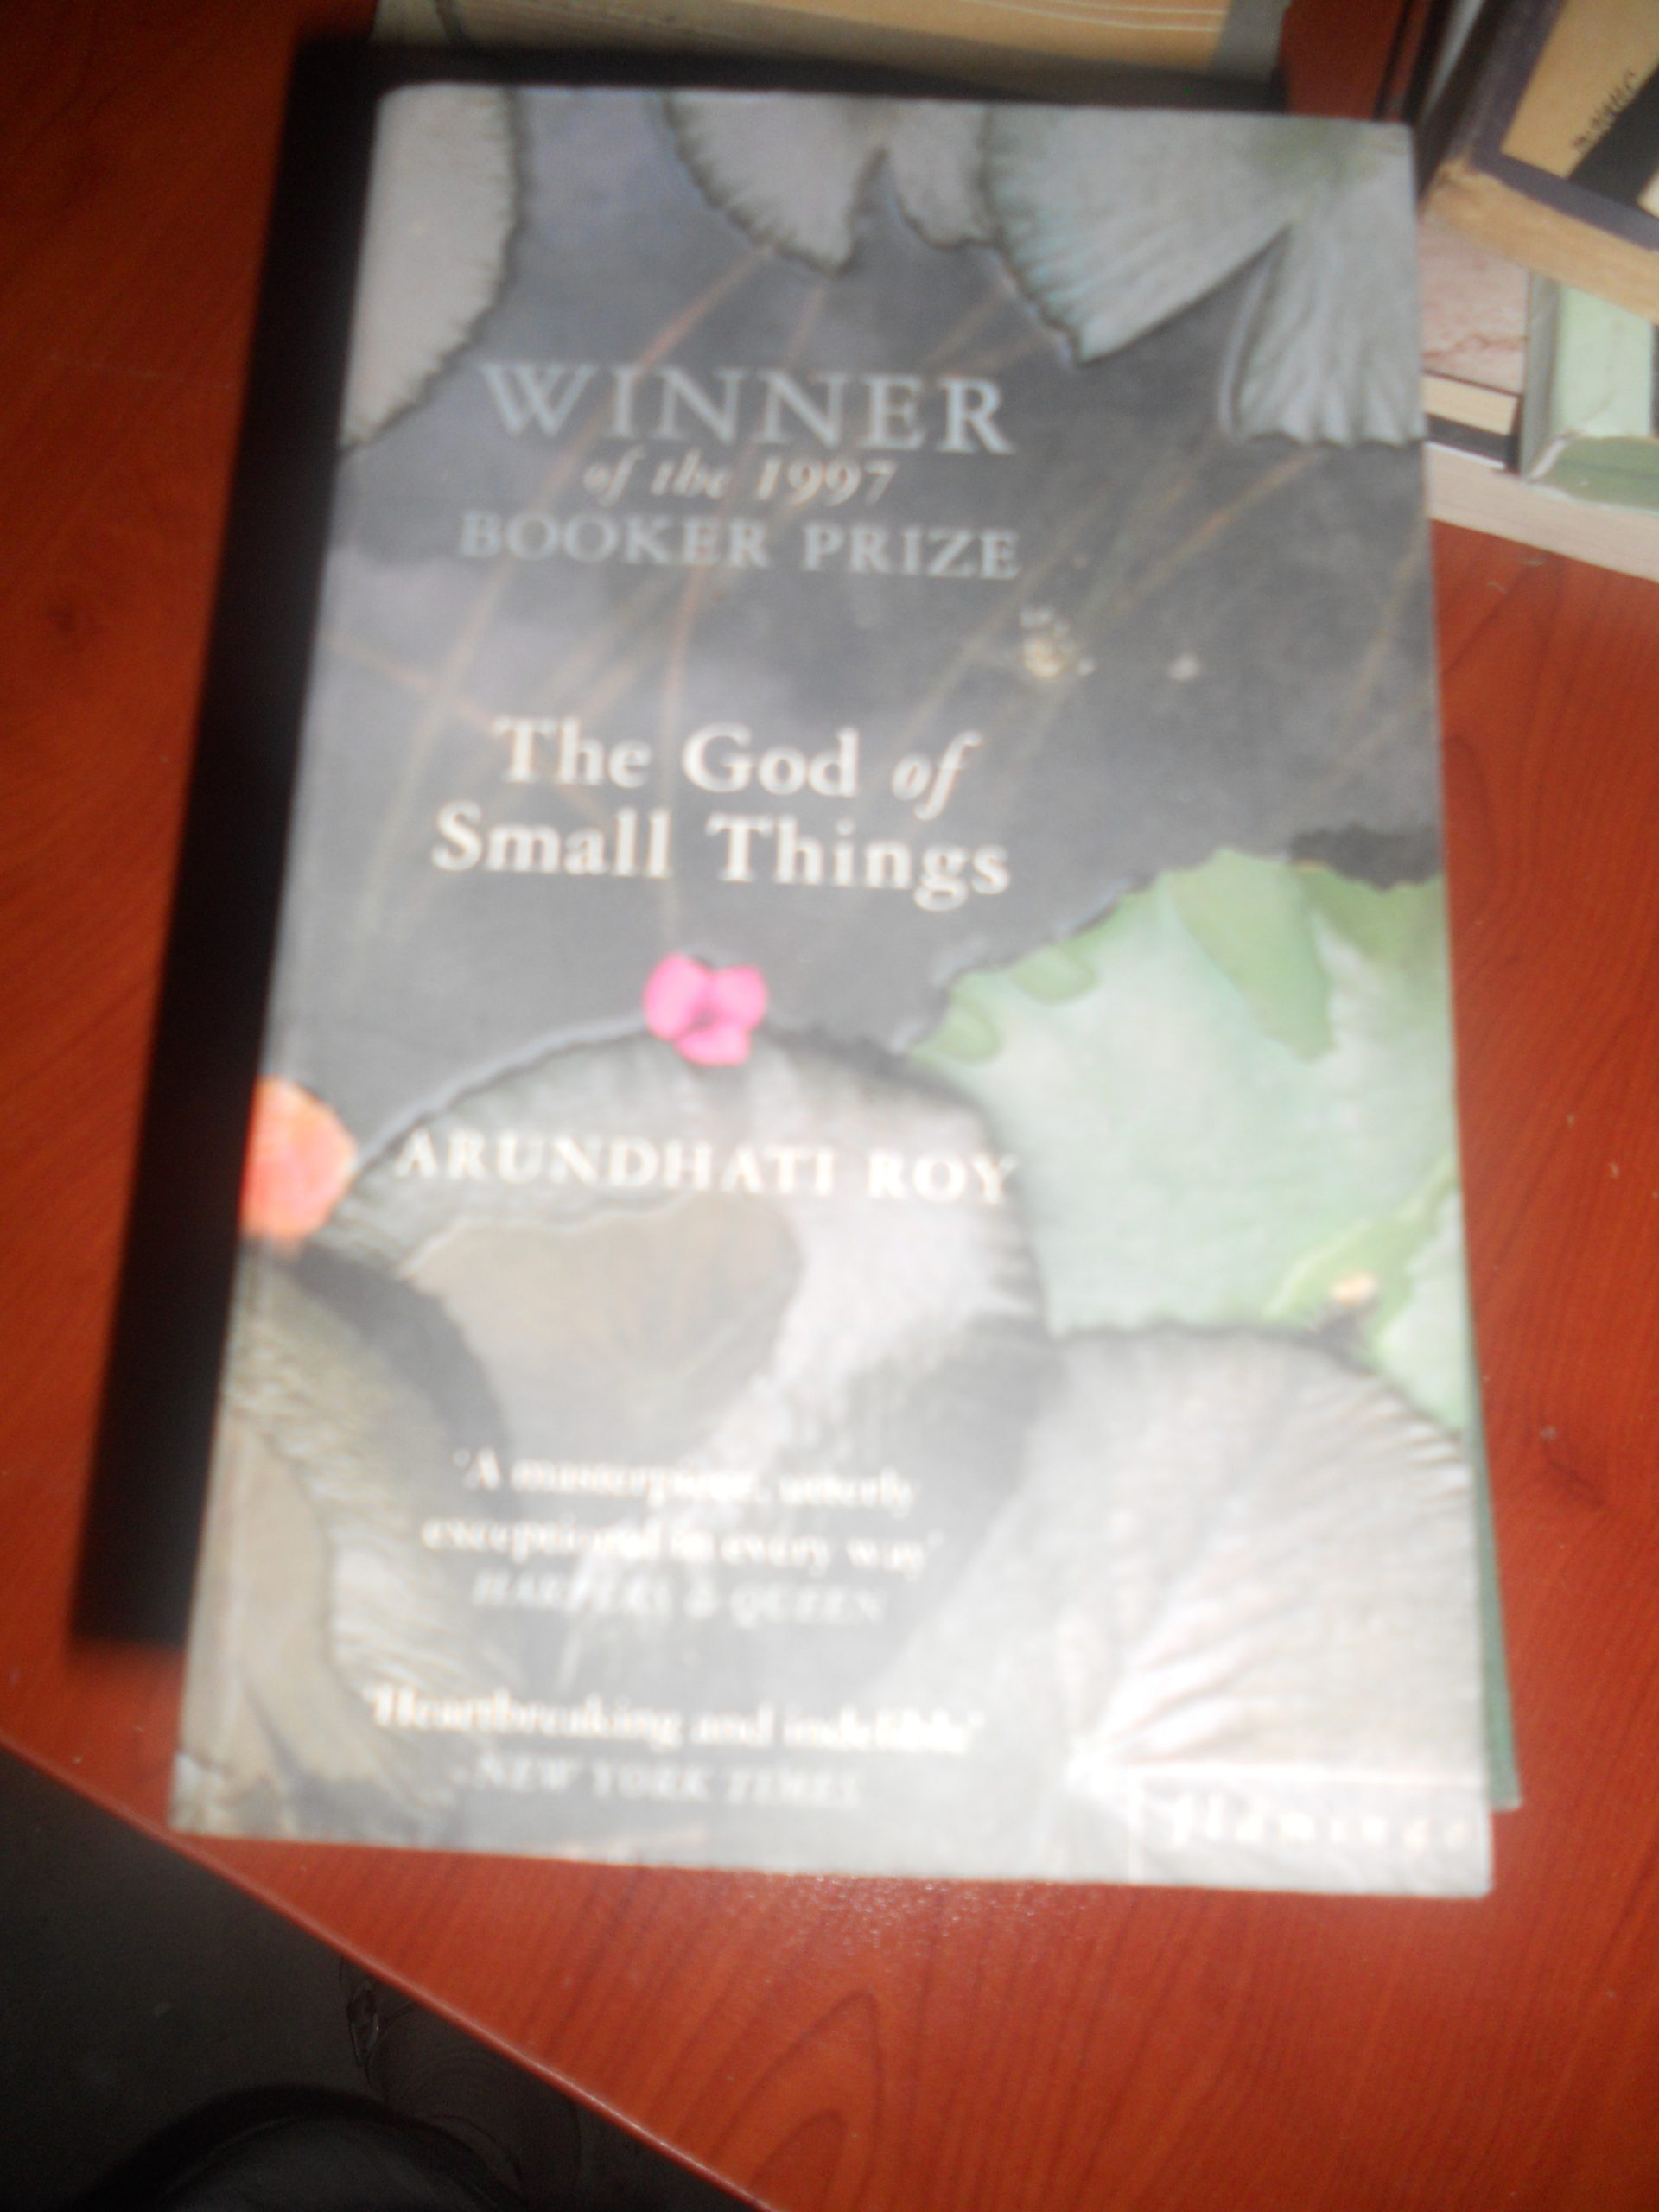 THE GOD OF SMALL THINGS/Wınner of the 1997 booker prıze/Arundhatı Roy/ 10 tl